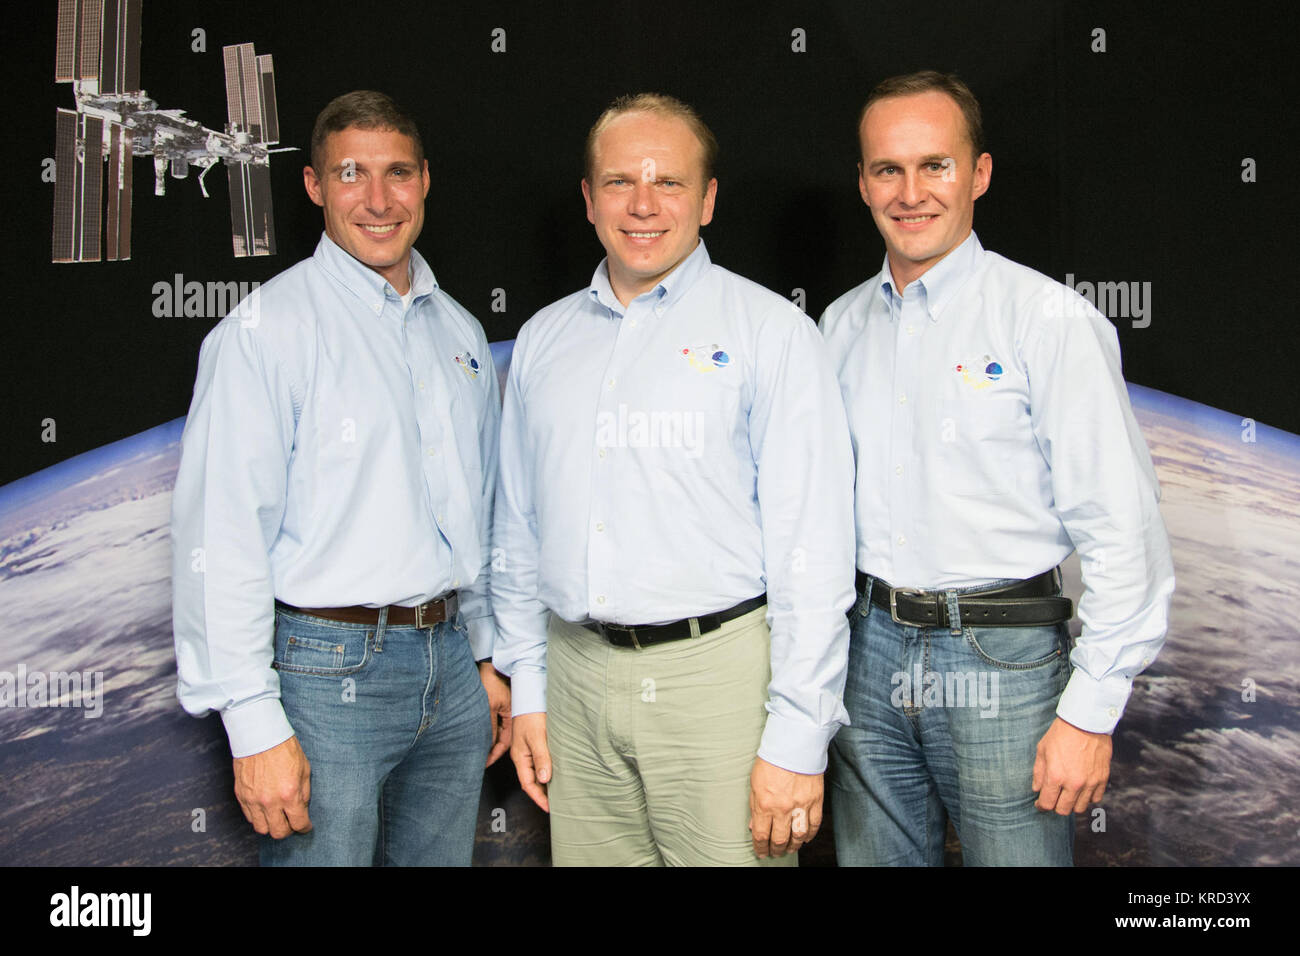 Expedition 37 Crew News Conference (Oleg Kotov, Sergey Ryazansky, Michael Hopkins).  Photo Date: July 17, 2013. - Stock Image